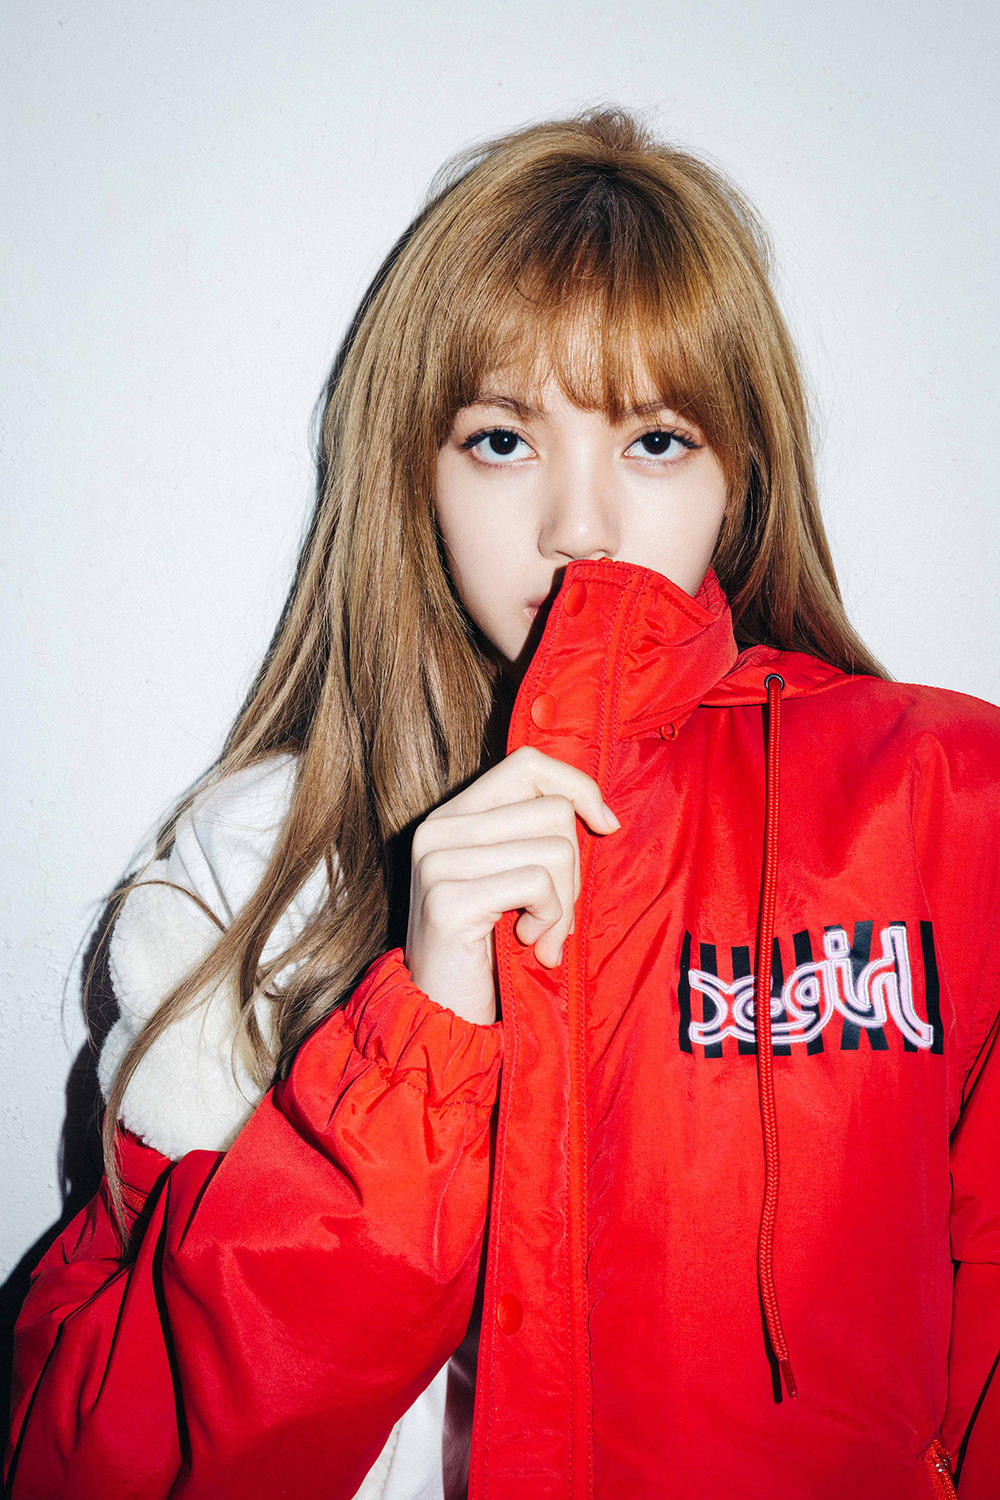 X-Girl Nonagon Blackpink Lisa Campaign Collaboration K-Pop Red Jacket Logo